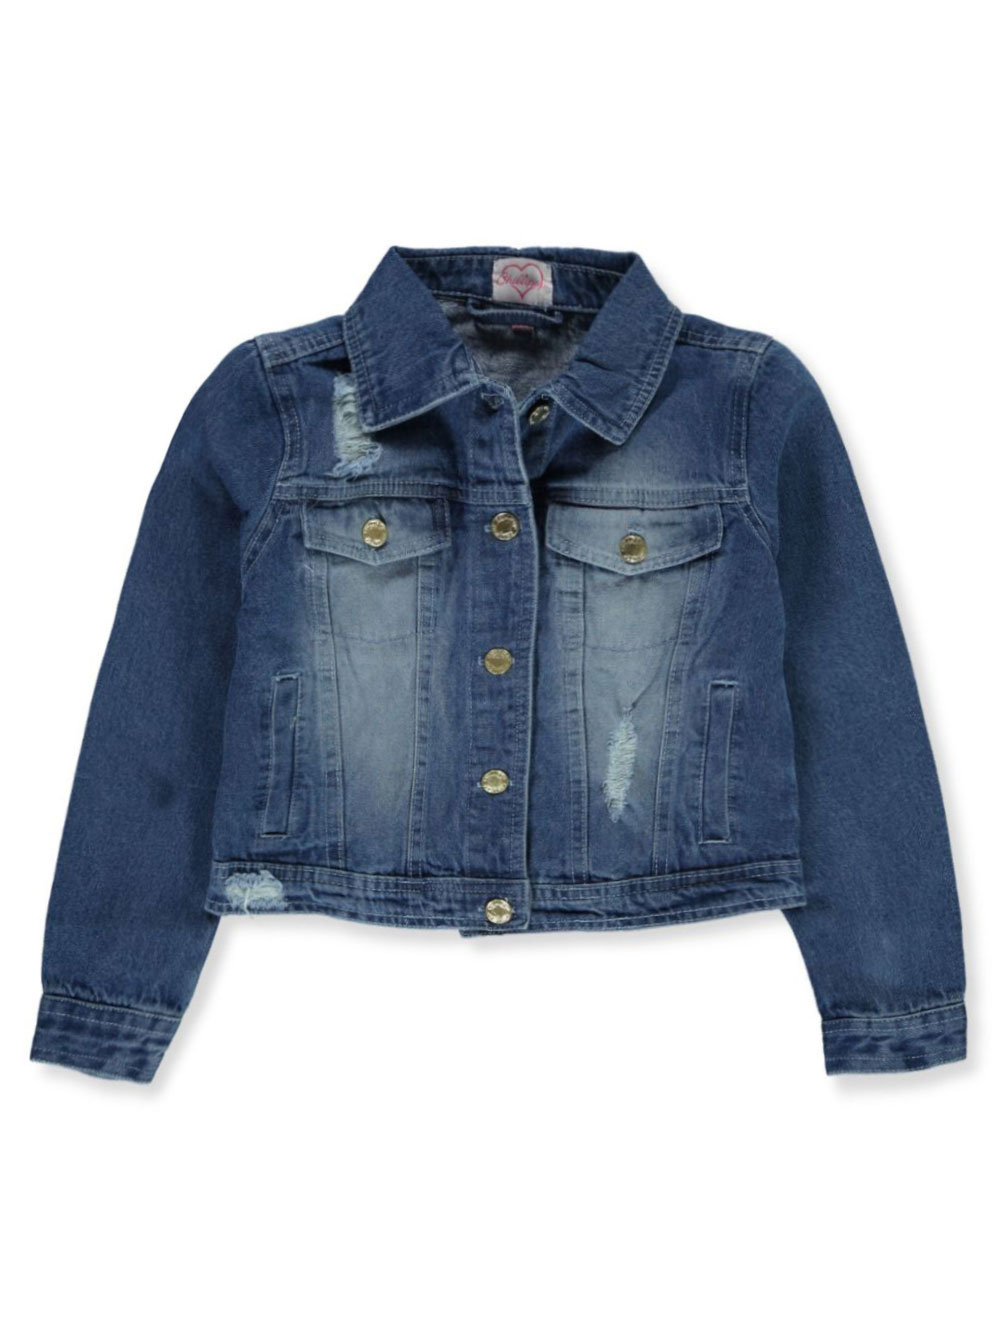 Size 12-14 Light Jackets for Girls